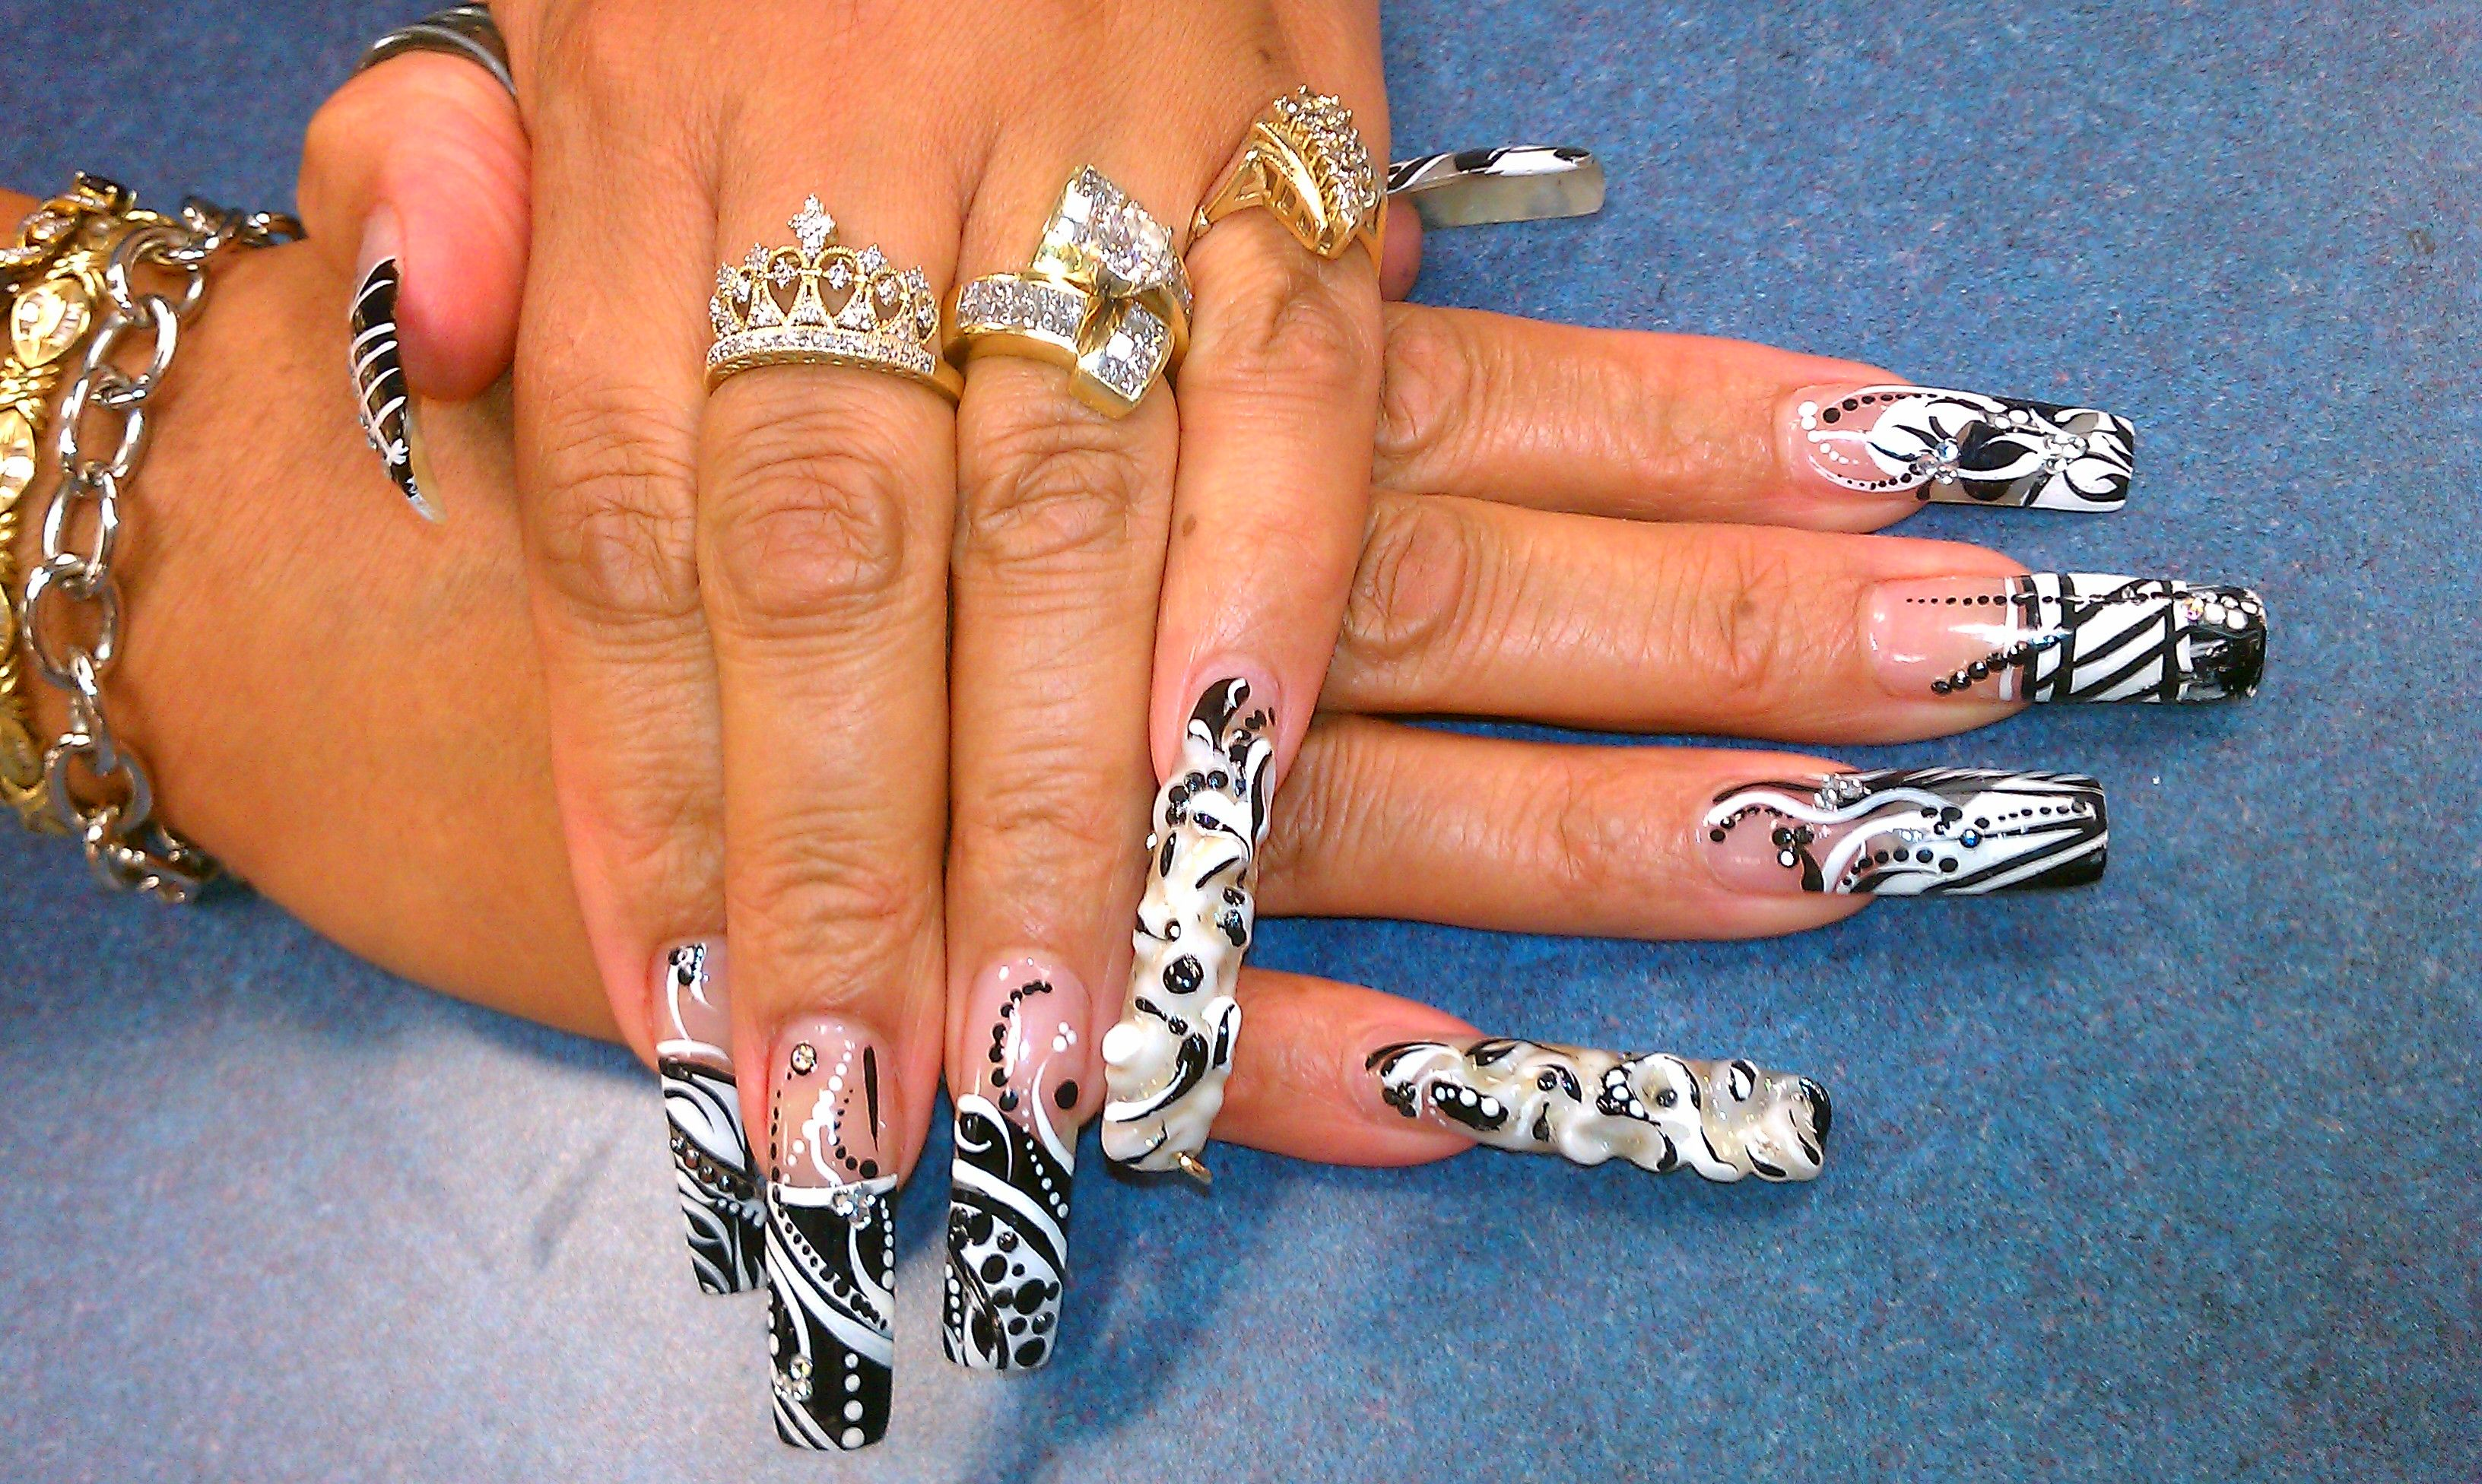 Black and white by joy of nails | Joy of Nails | Pinterest